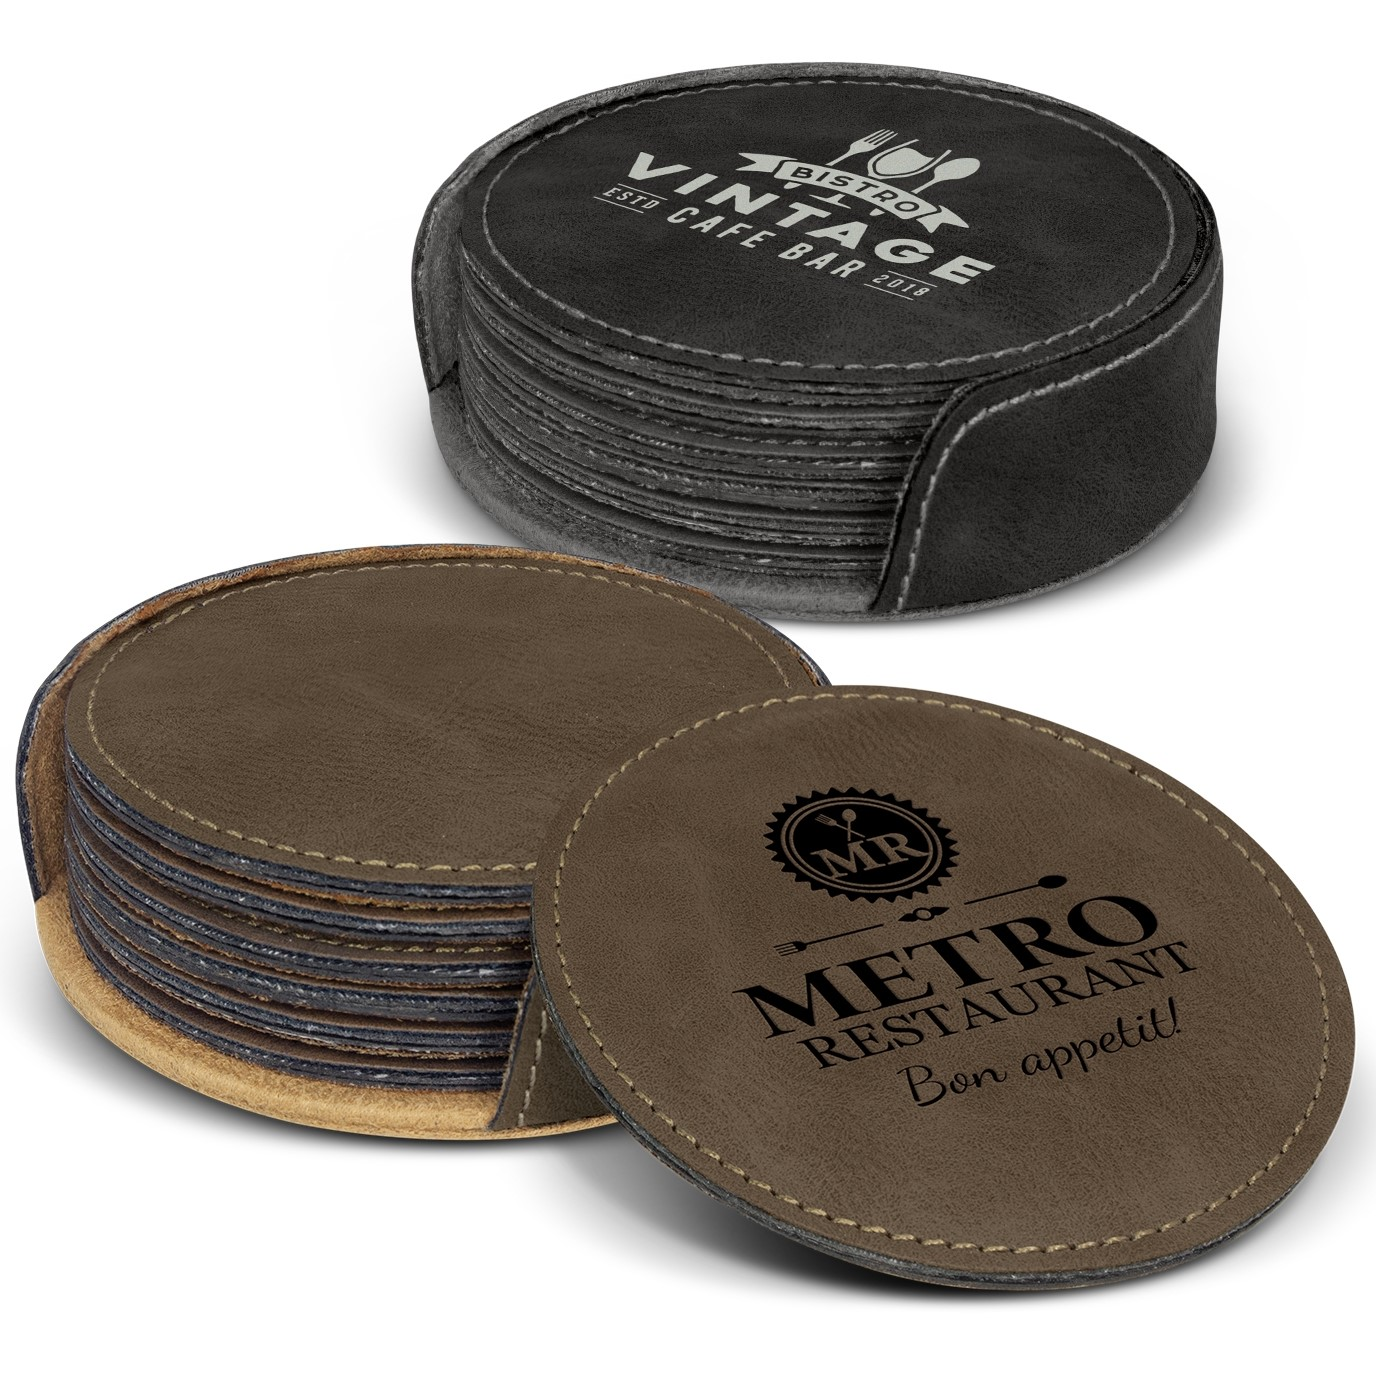 Sirocco Coaster Set of 6